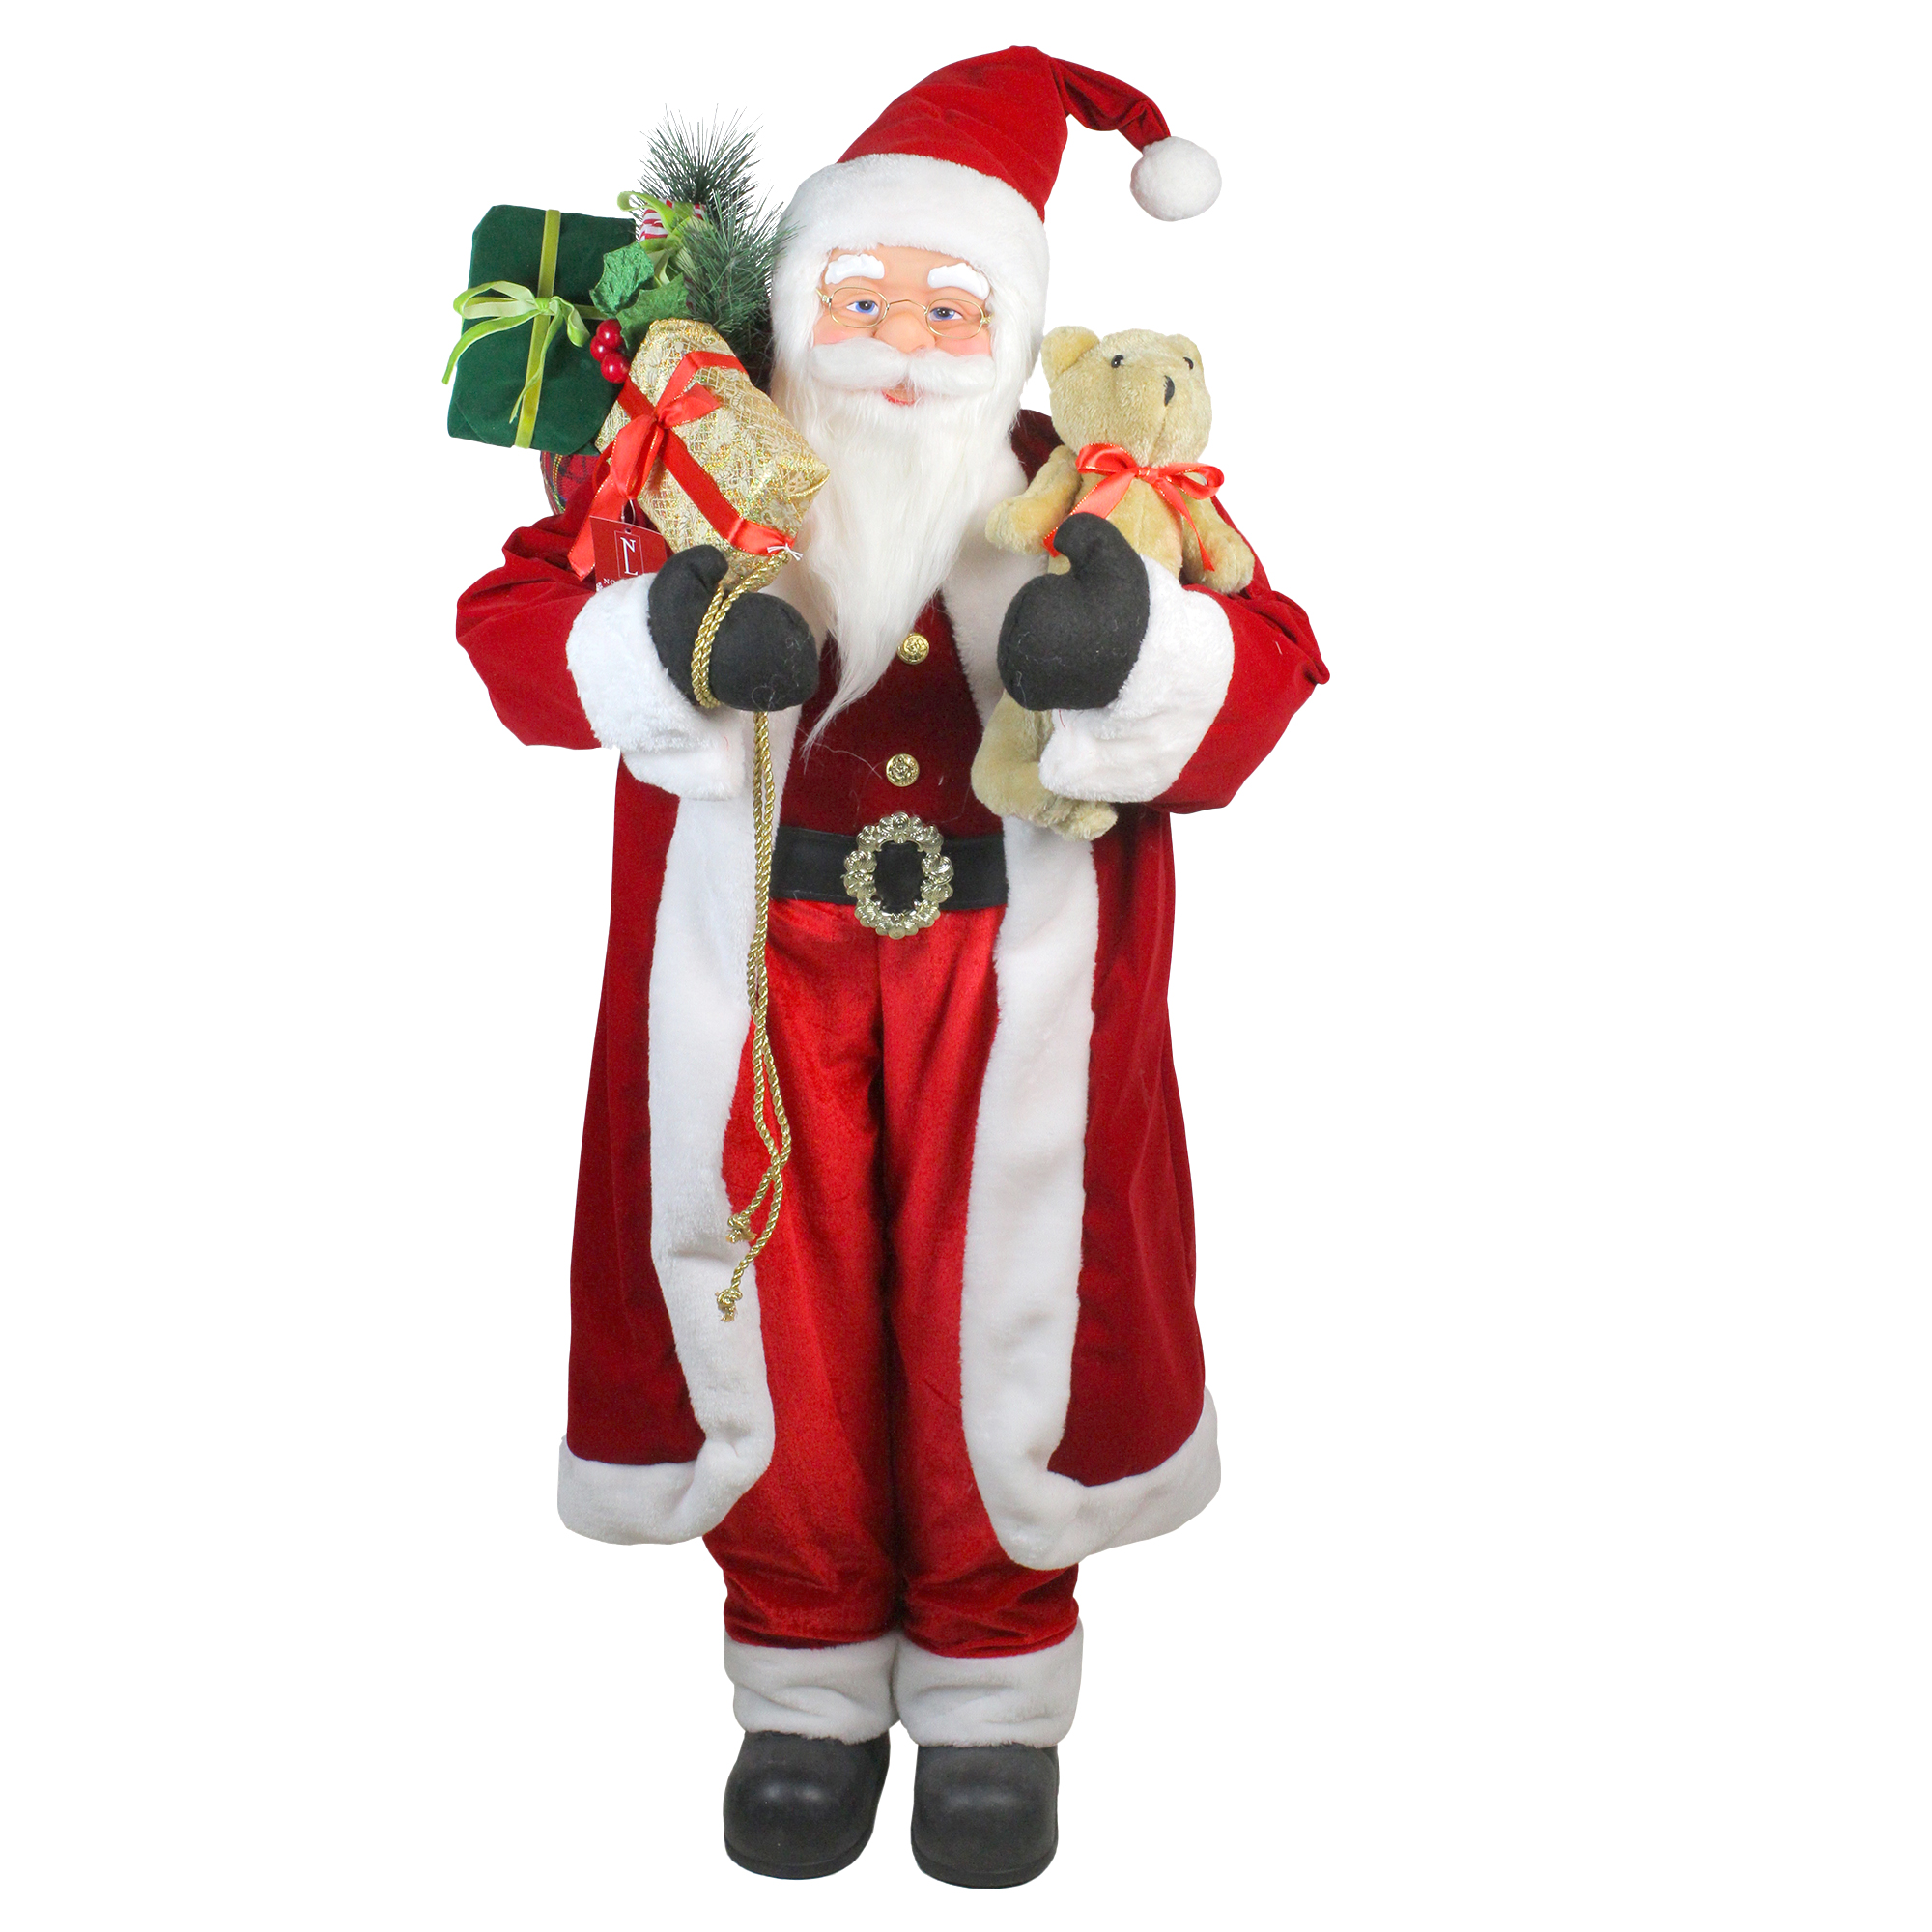 4' Standing Santa Claus Christmas Figure with Teddy Bear and Gift Sack